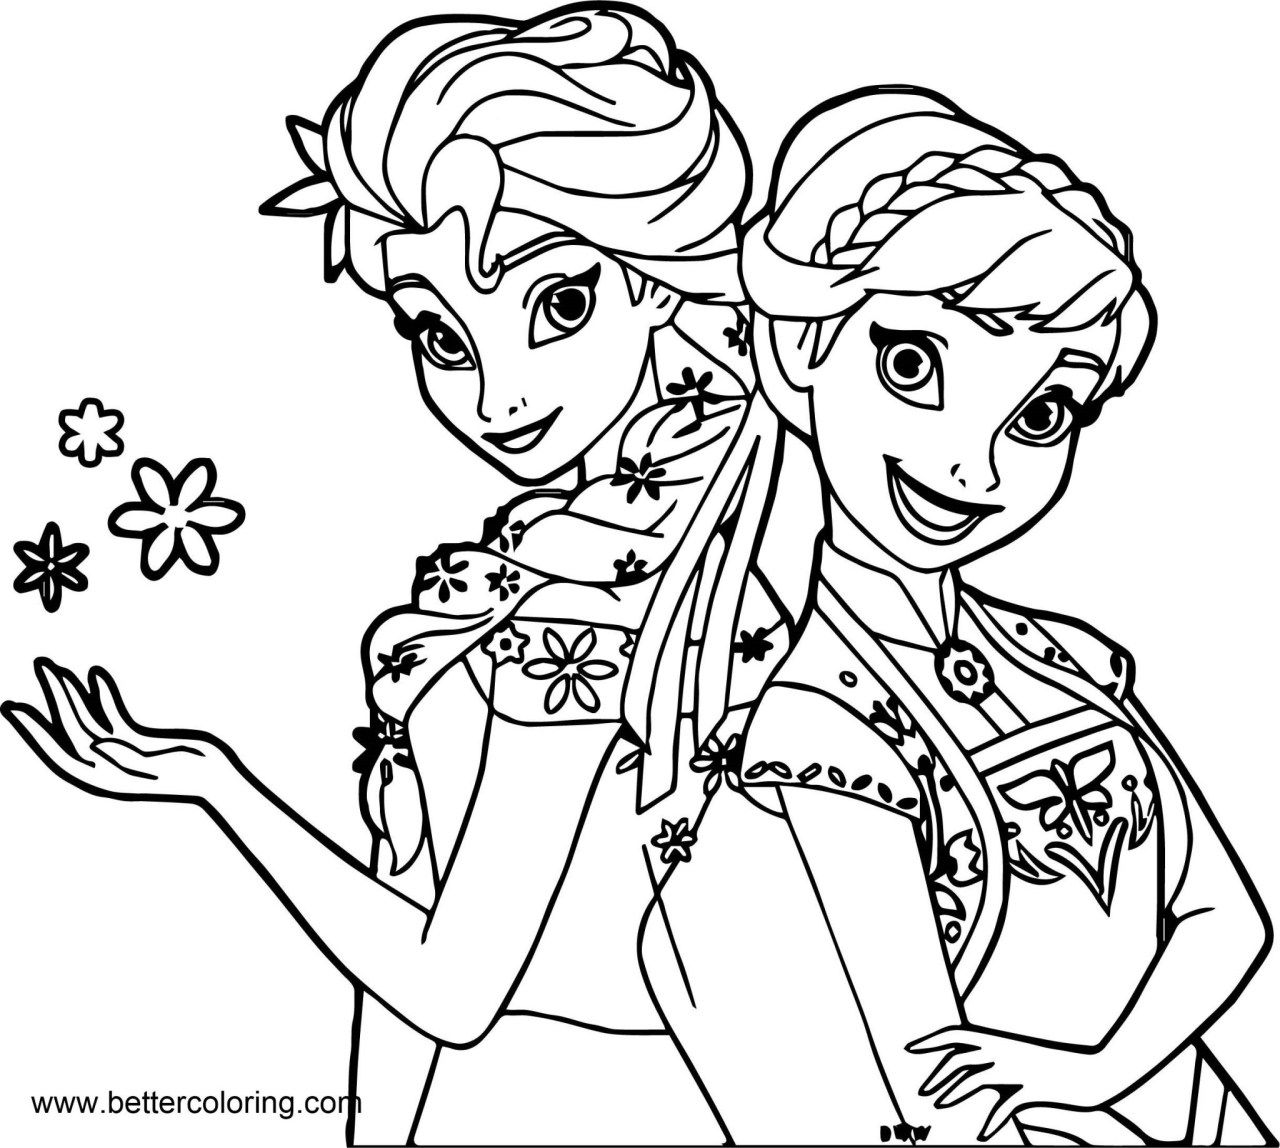 25 Elegant Photo Of Anna Coloring Pages Entitlementtrap Com Frozen Coloring Pages Disney Coloring Pages Elsa Coloring Pages